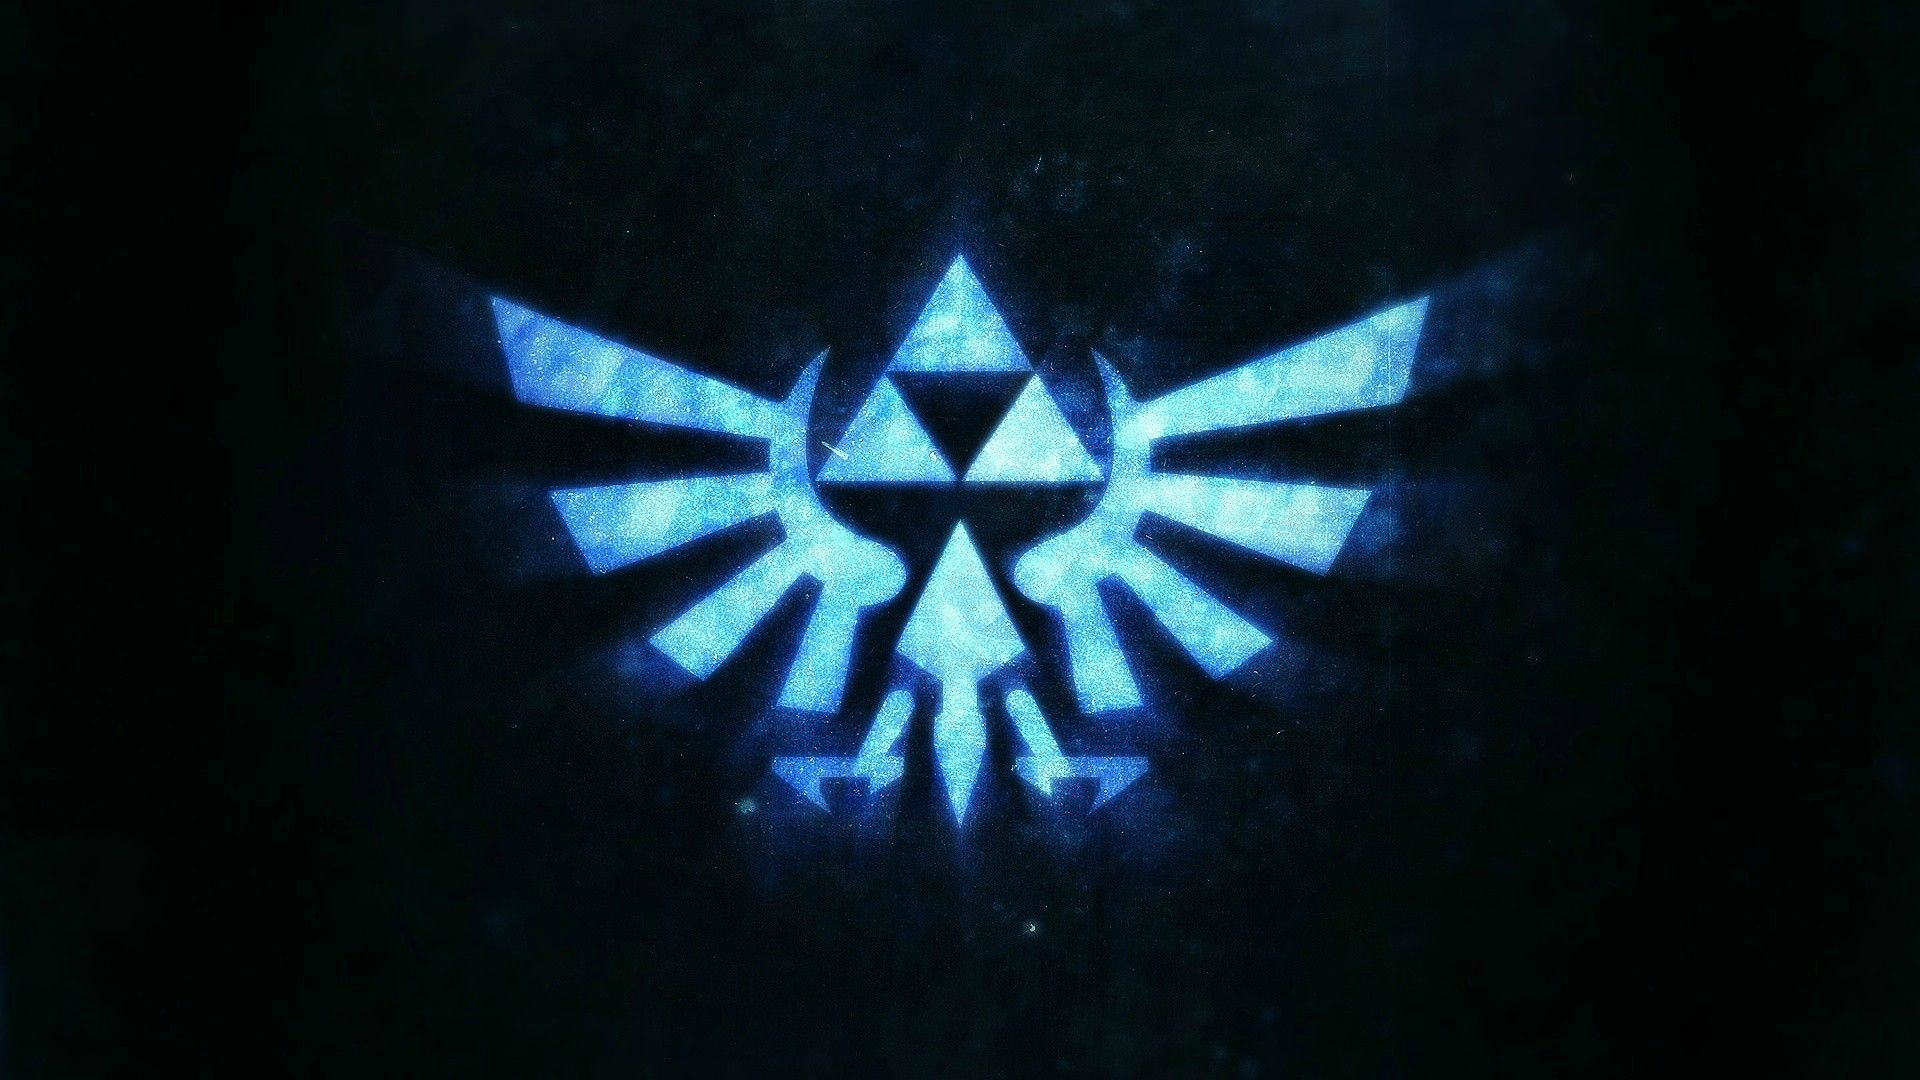 Hd Wallpapers Part 2 Do You Want A Thing Because This Is How You Get A Thing Legend Of Zelda Zelda Logo Gaming Wallpapers